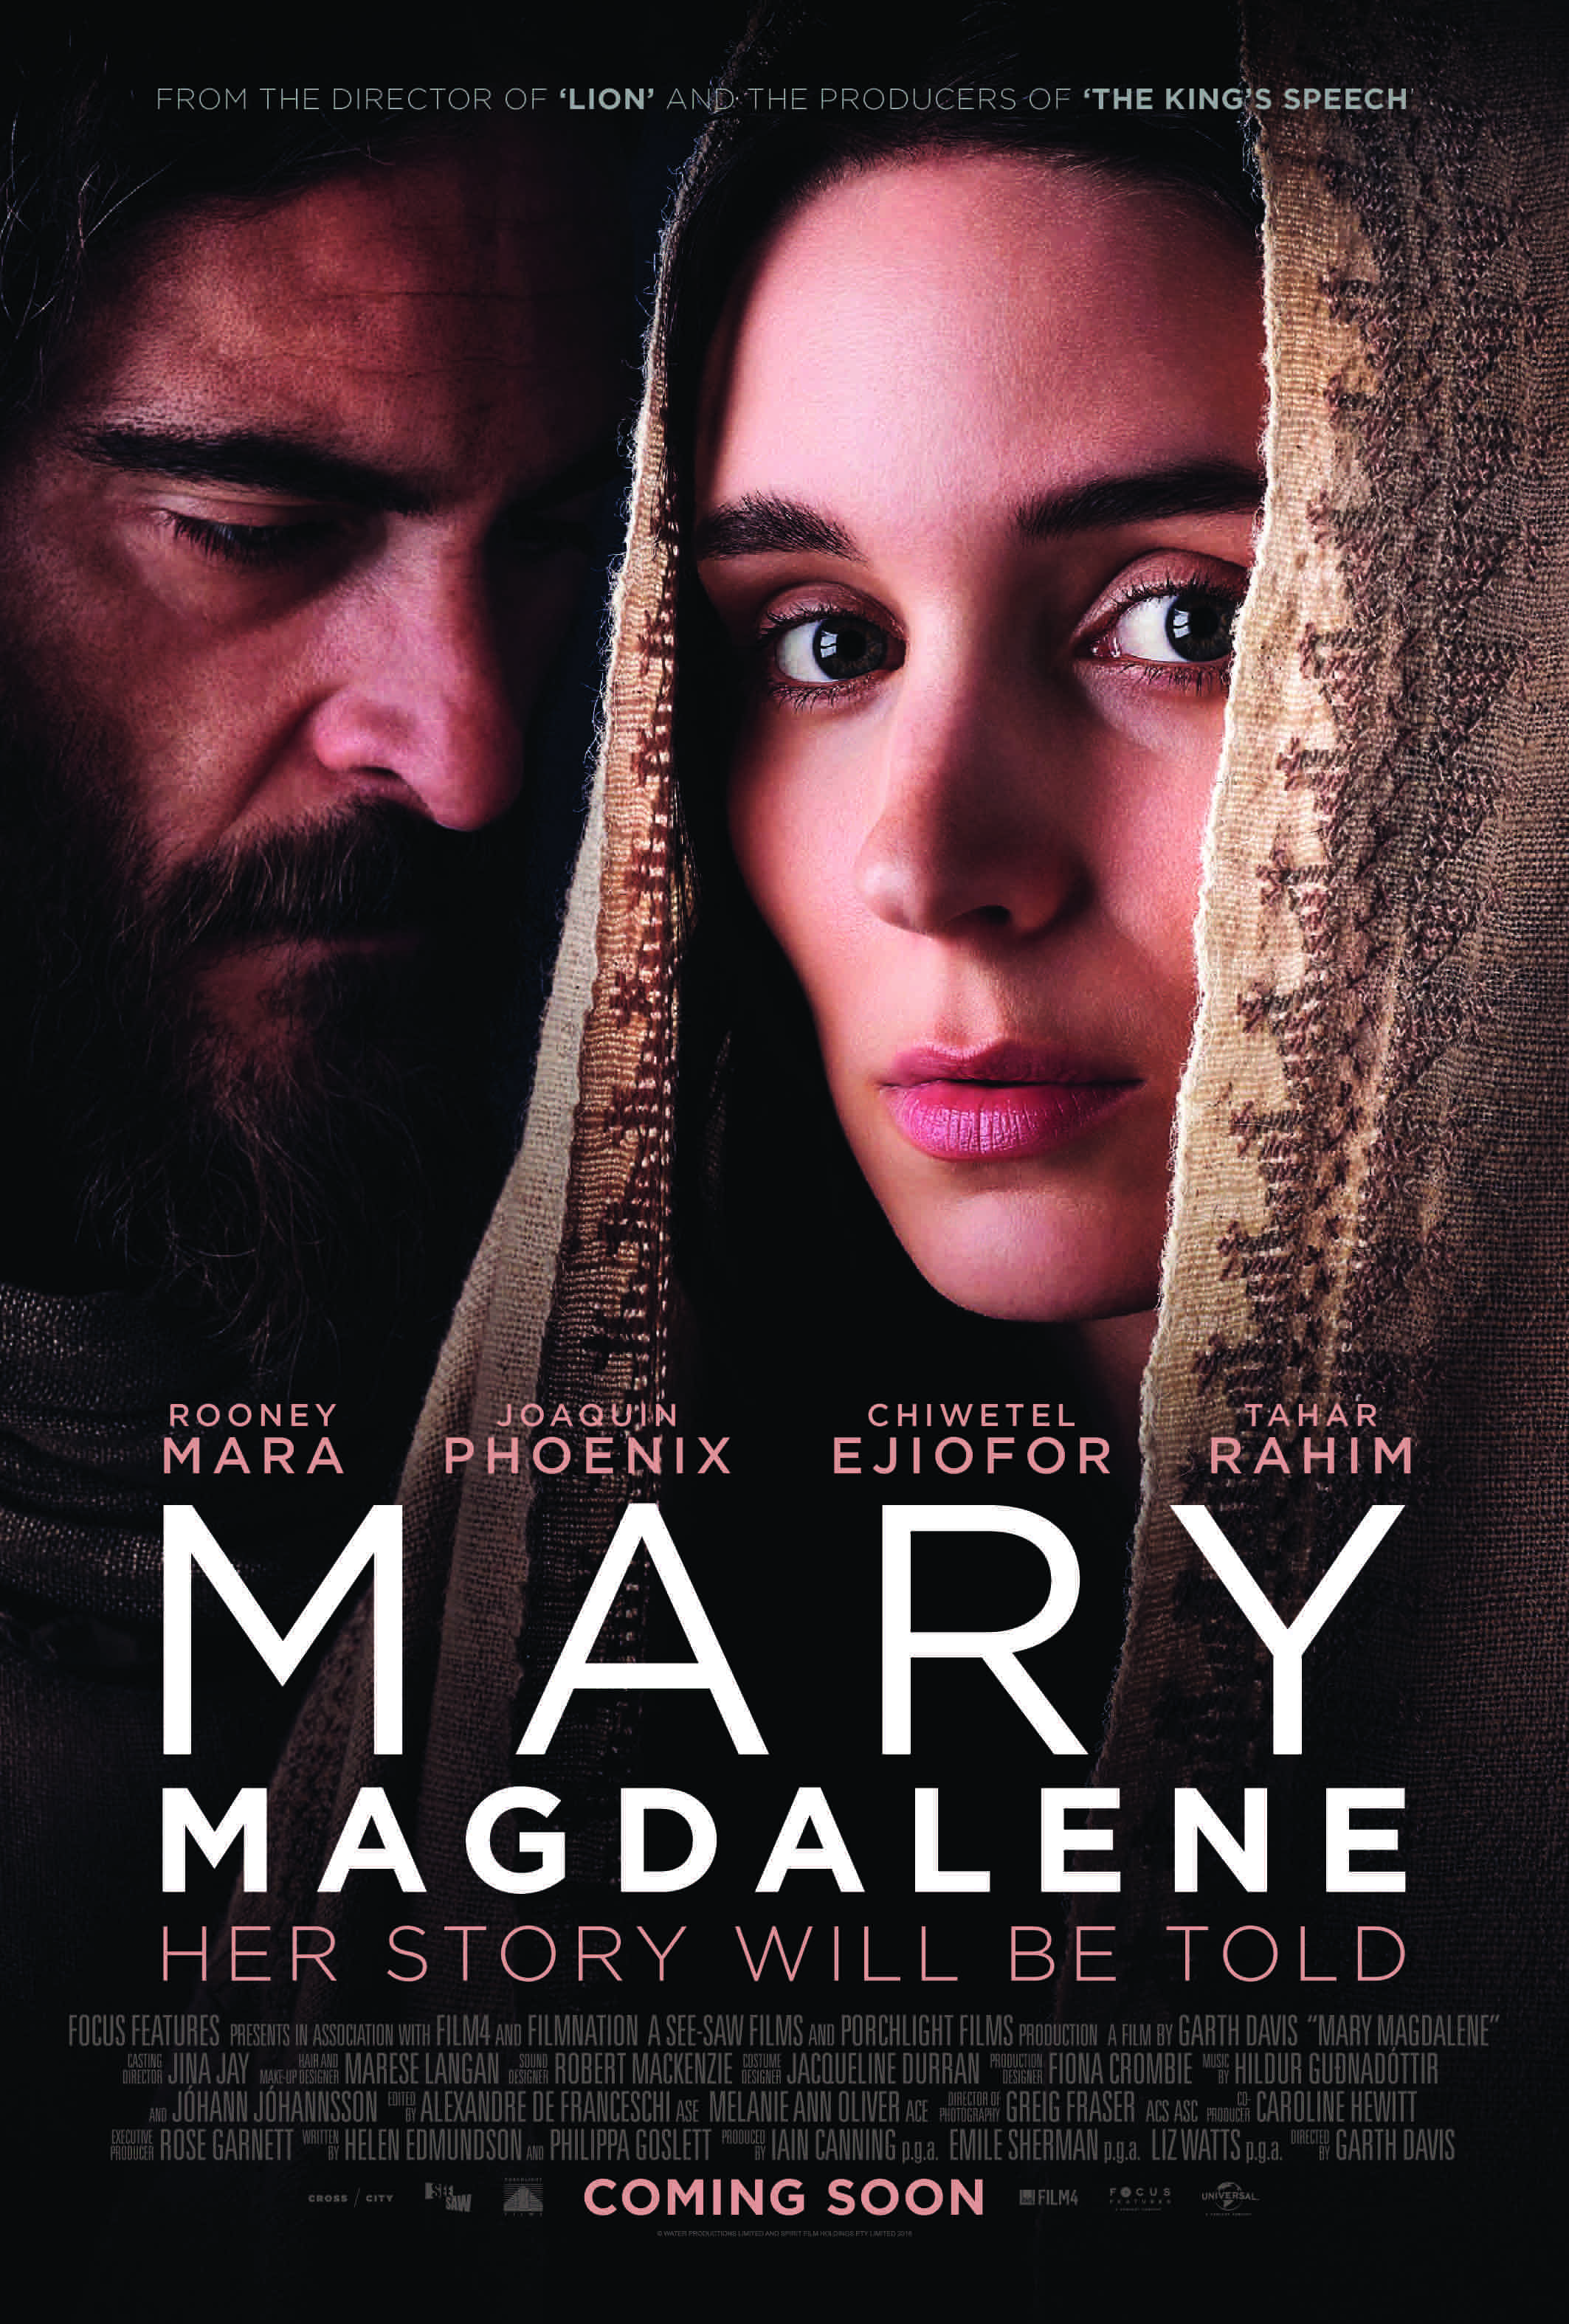 Event: Free Members' Exclusive Preview Screening of Mary Magdalene